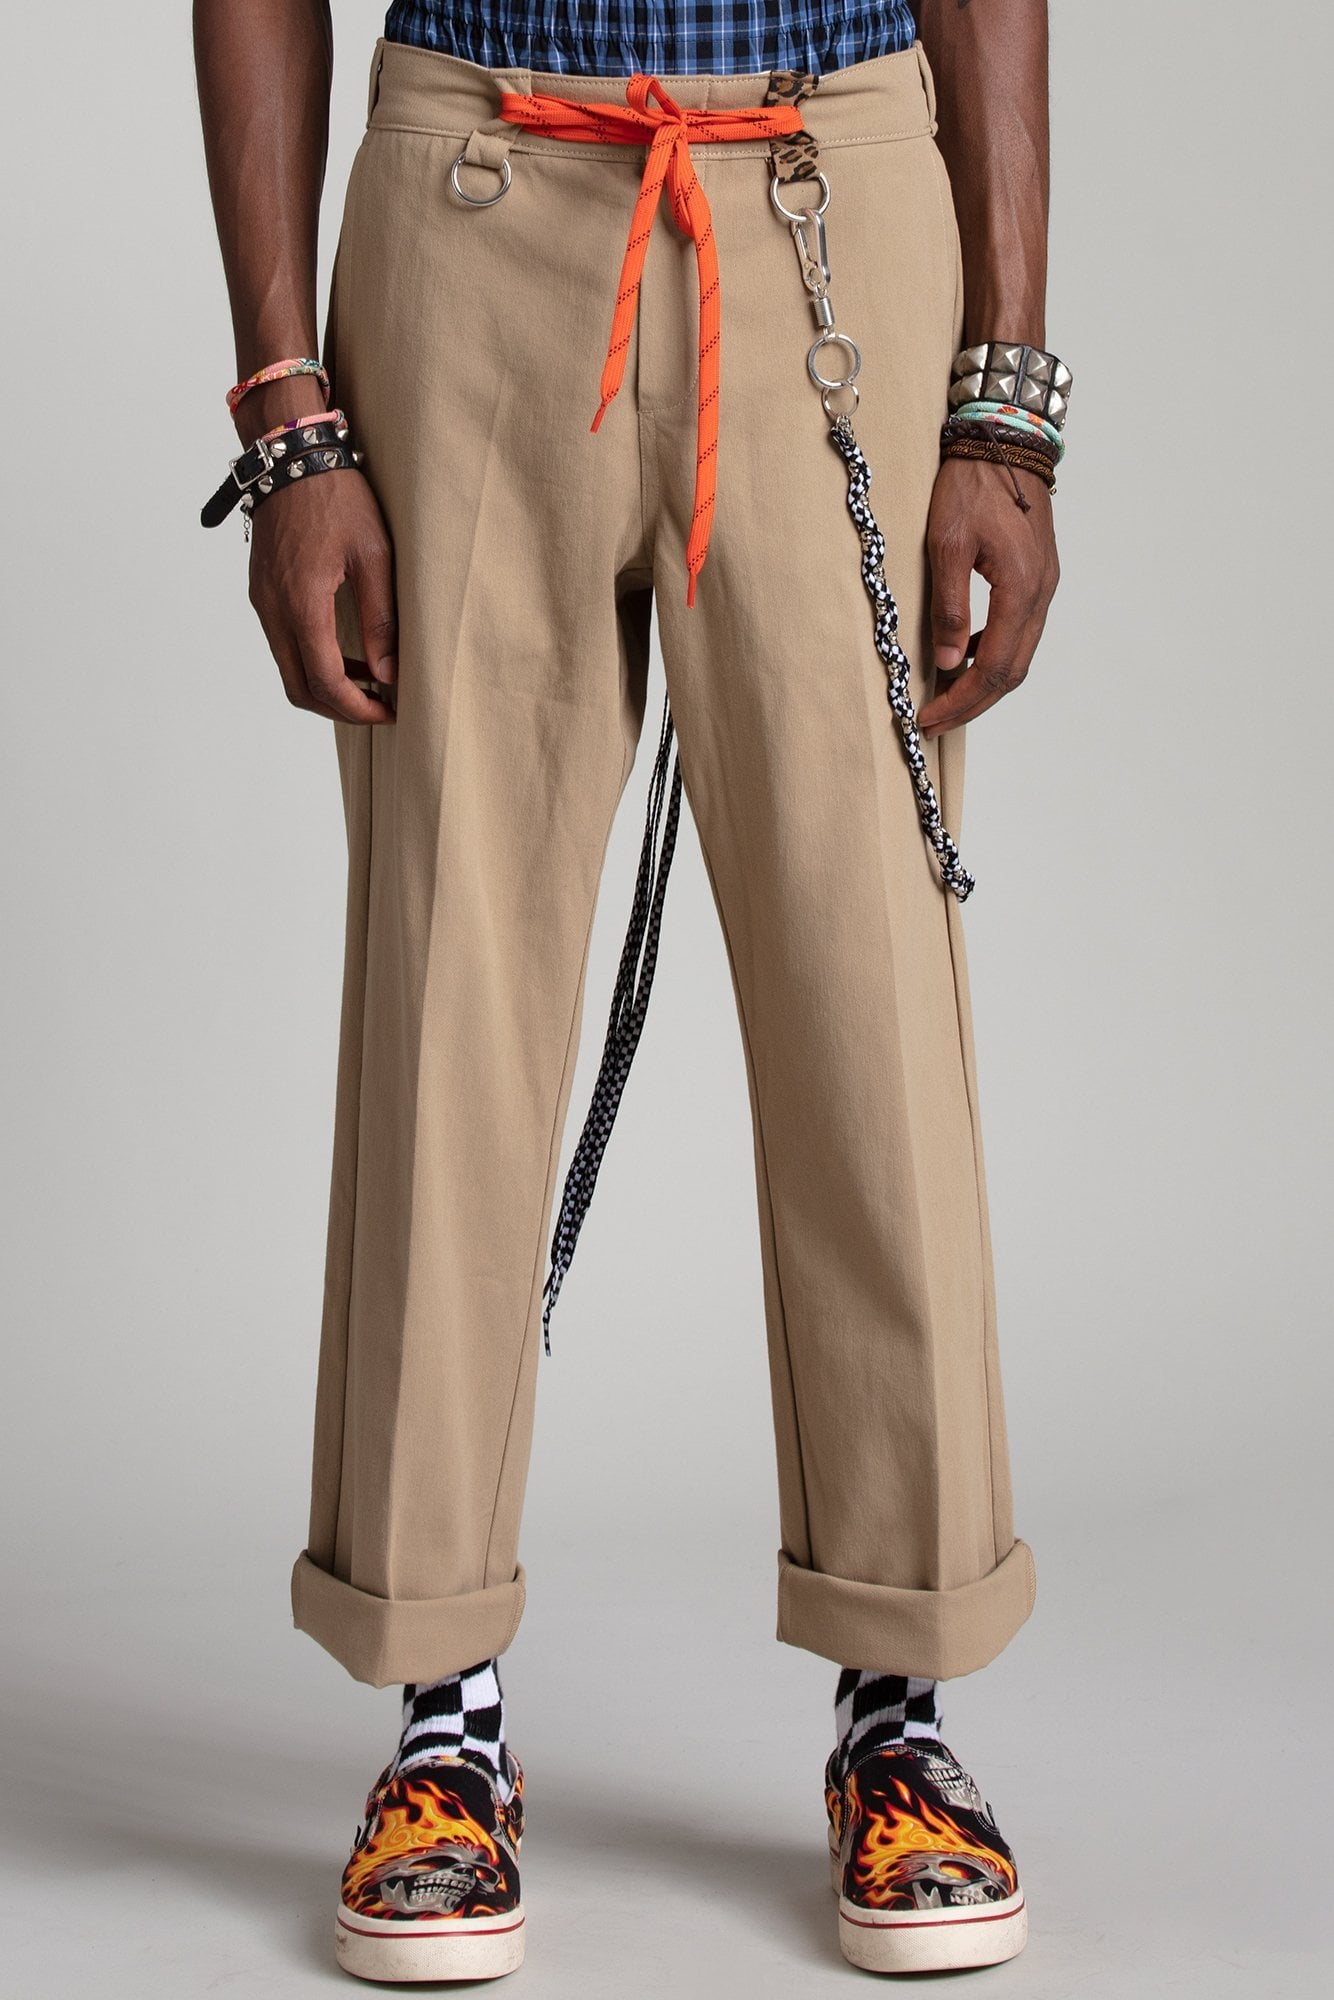 Slouch Pant with Rings - Khaki with Leopard